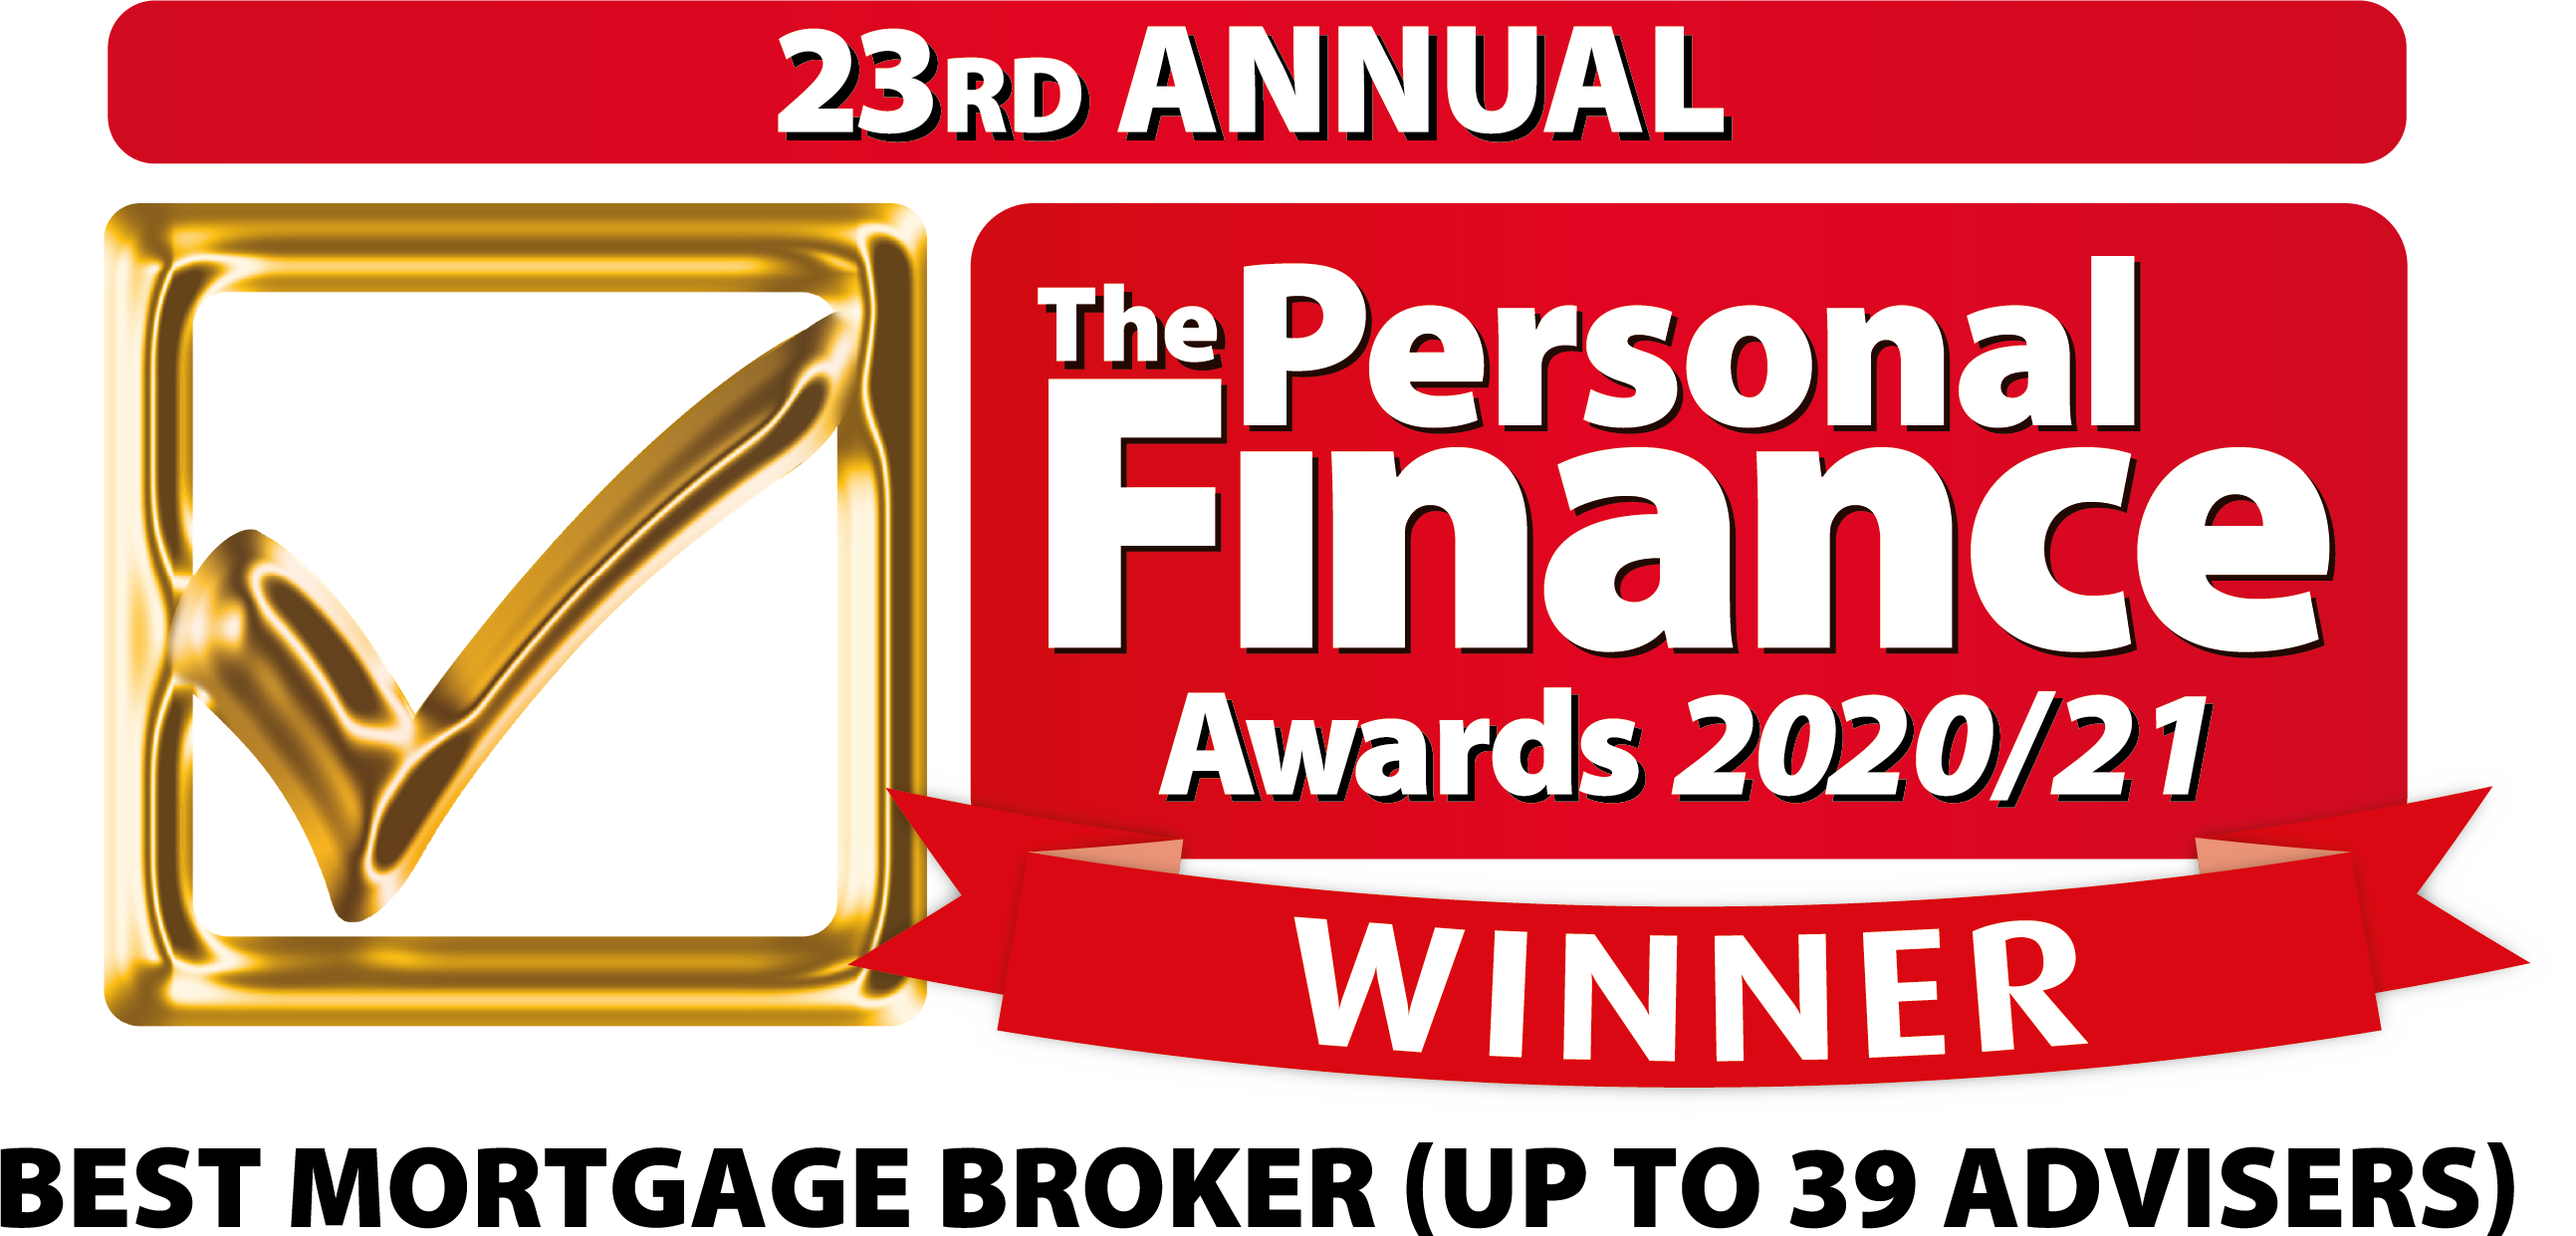 The Personal Finance Awards 2020/2021